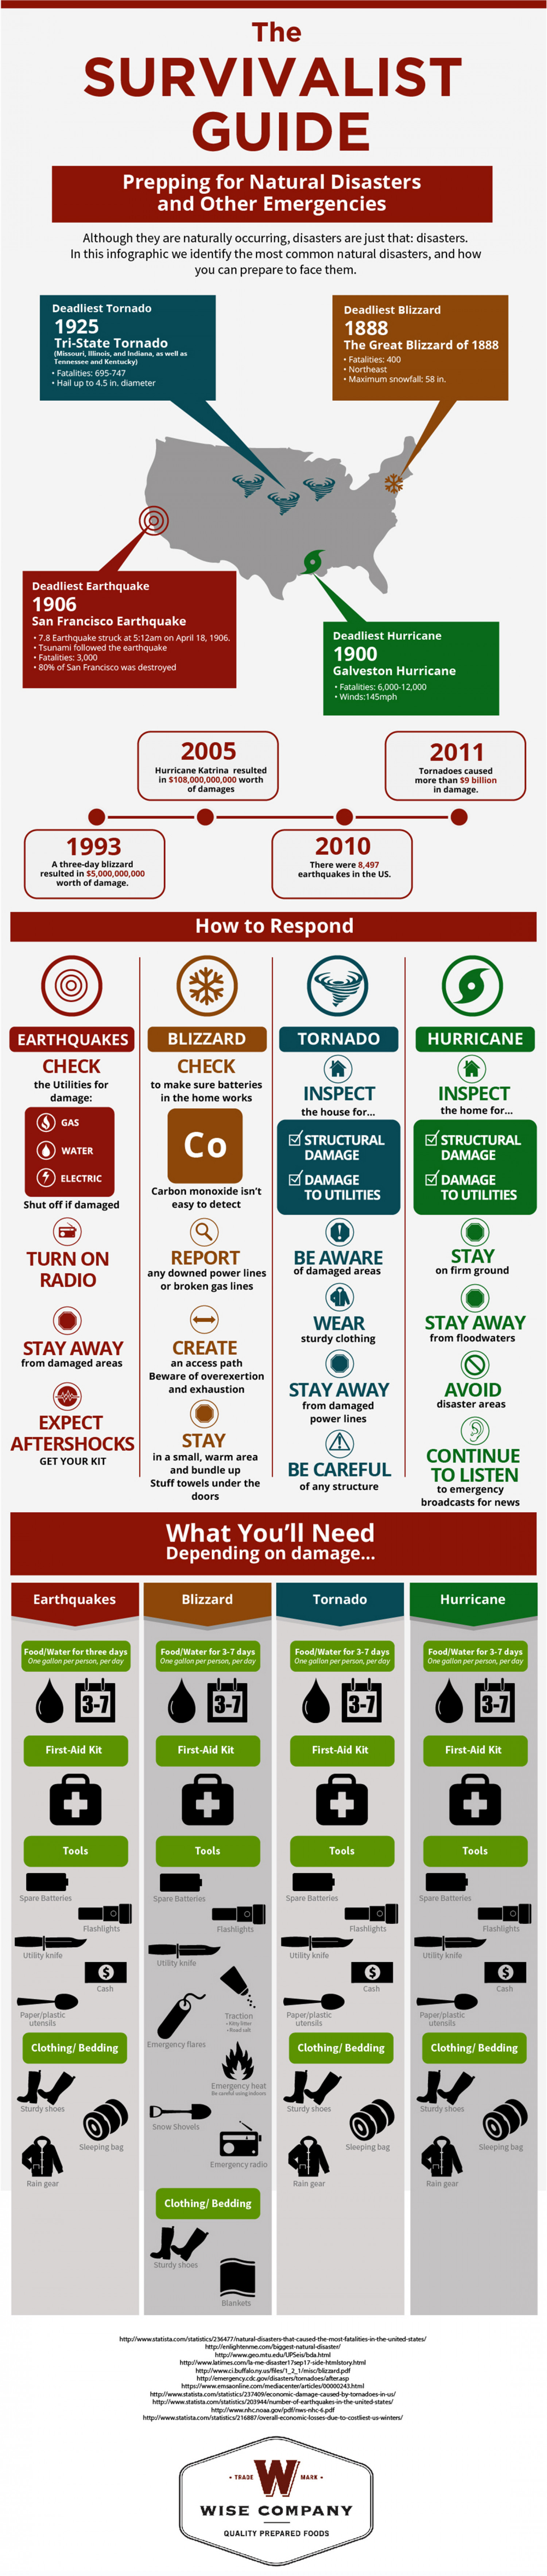 The Survivalist Guide: Prepping for Natural Disasters and Other Emergencies Infographic